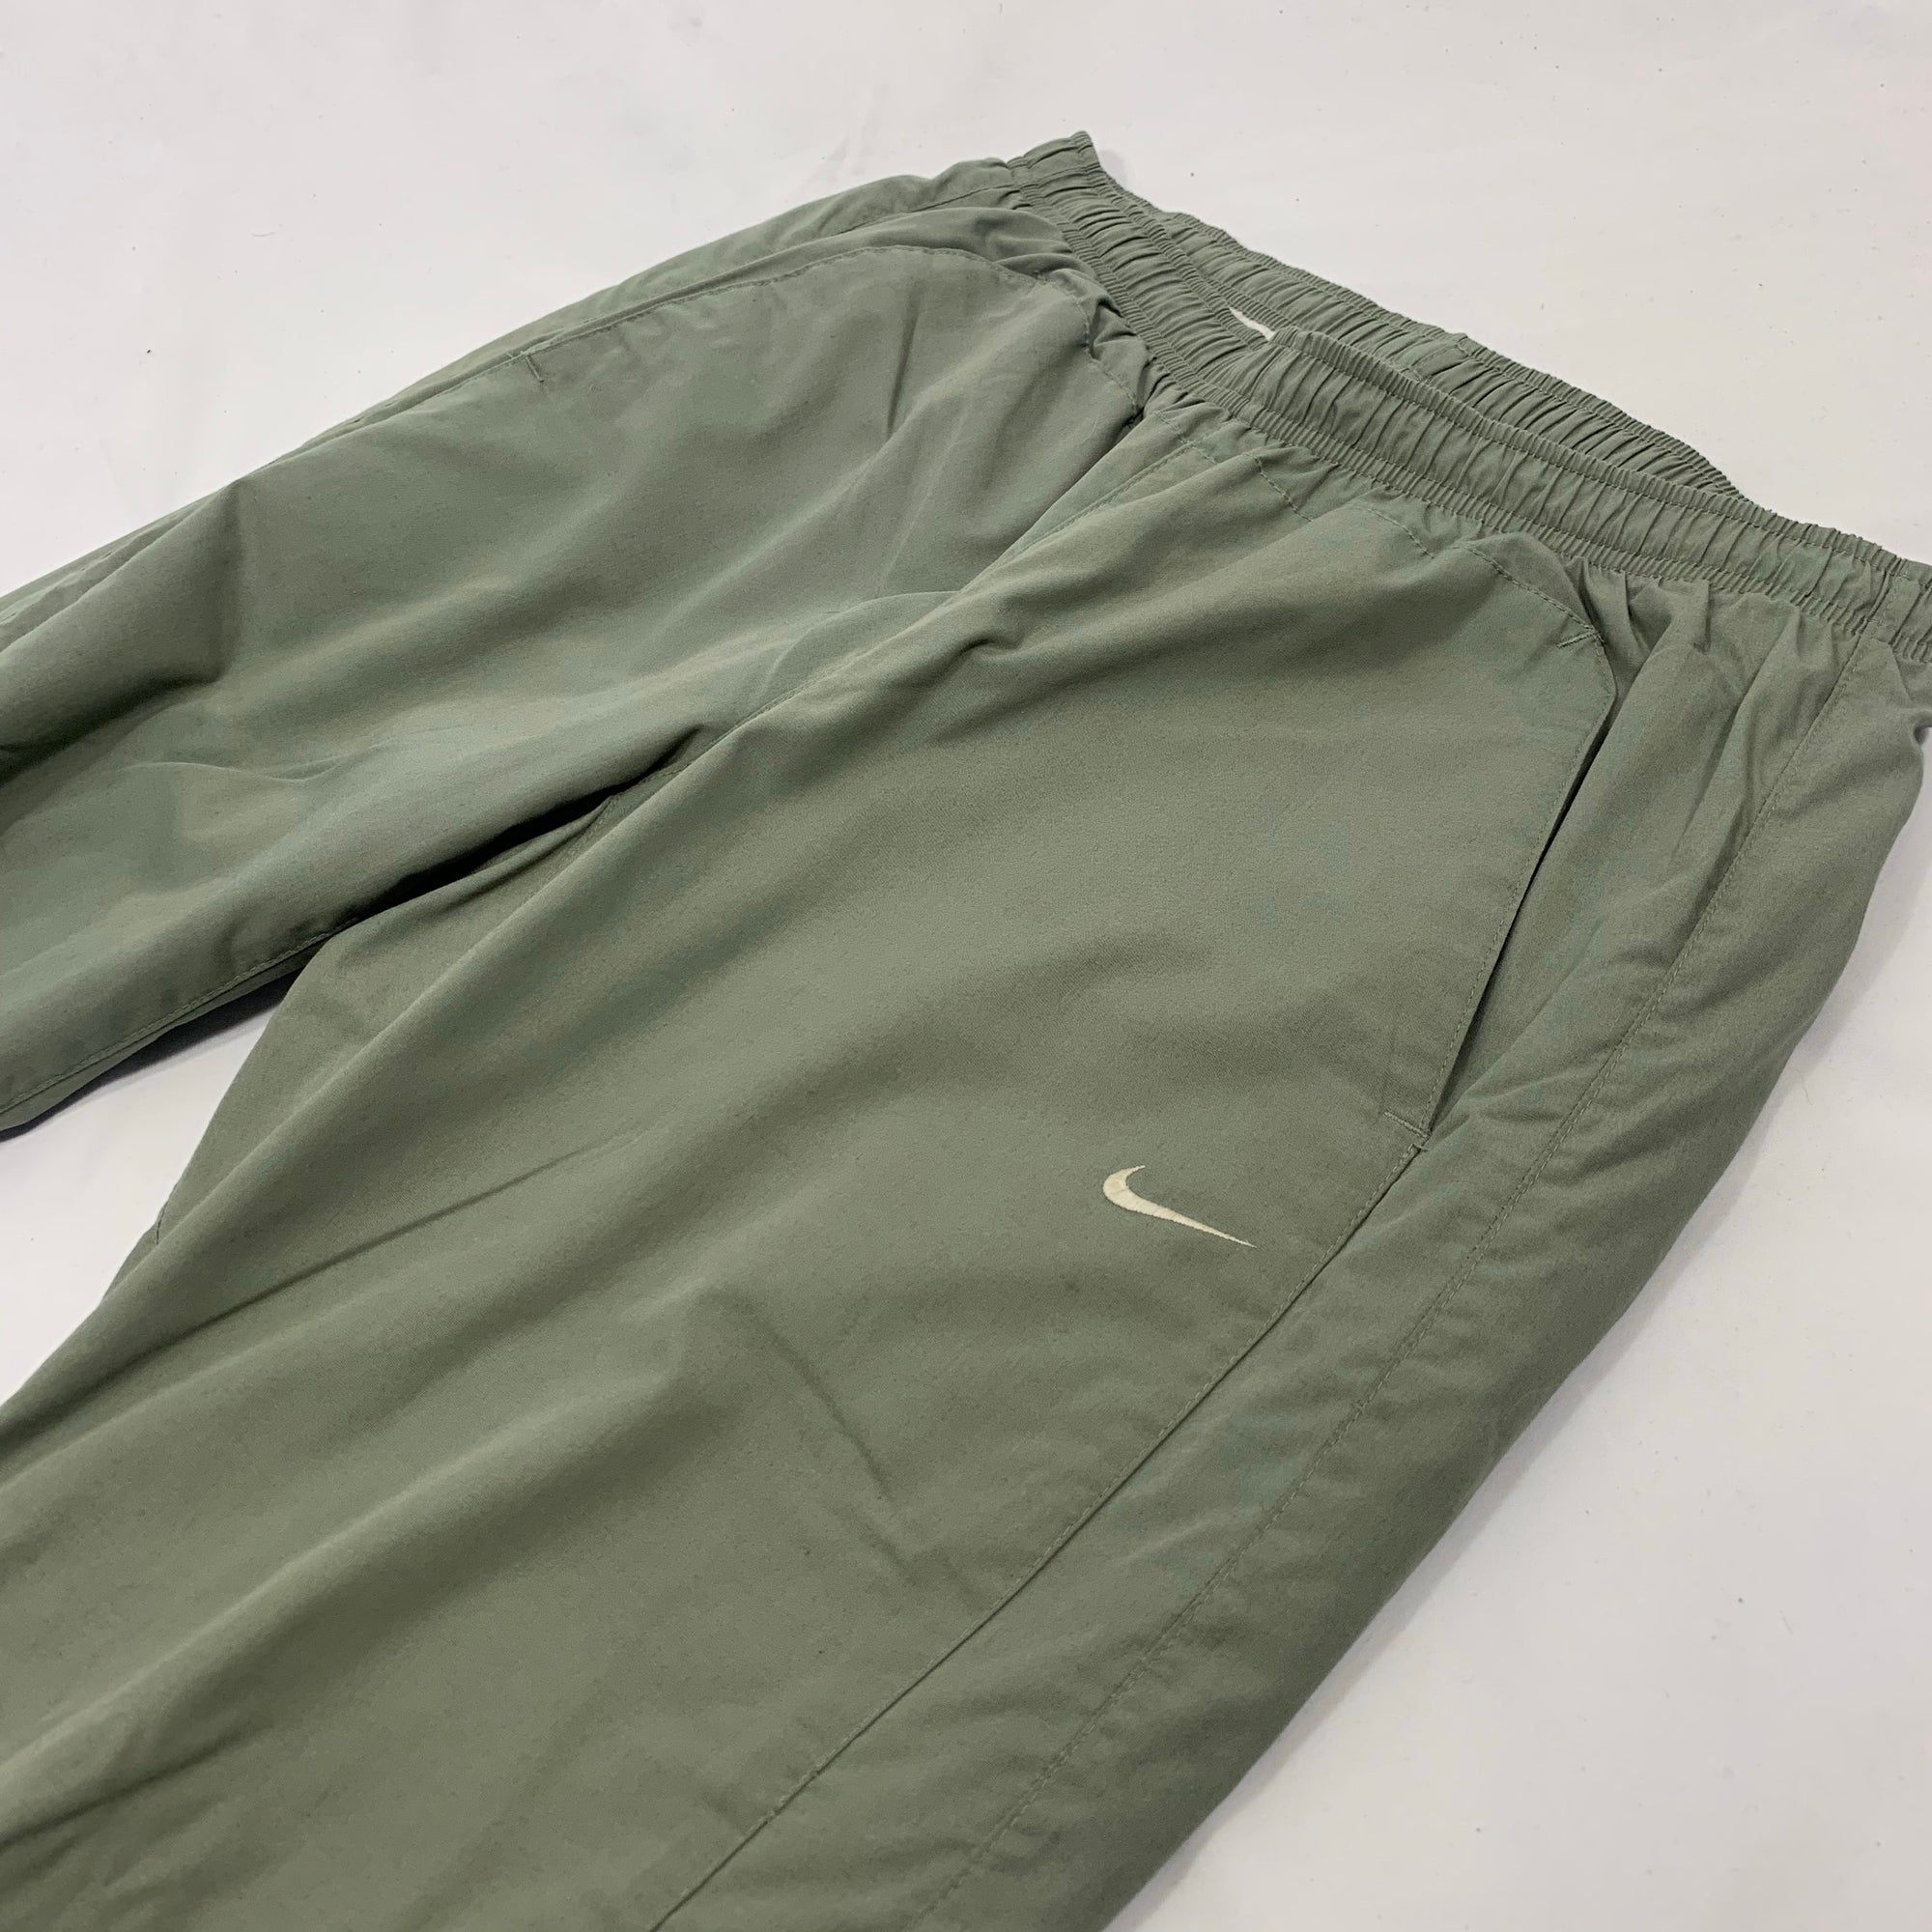 Vintage Nike Track Pants in Sage Green - Medium